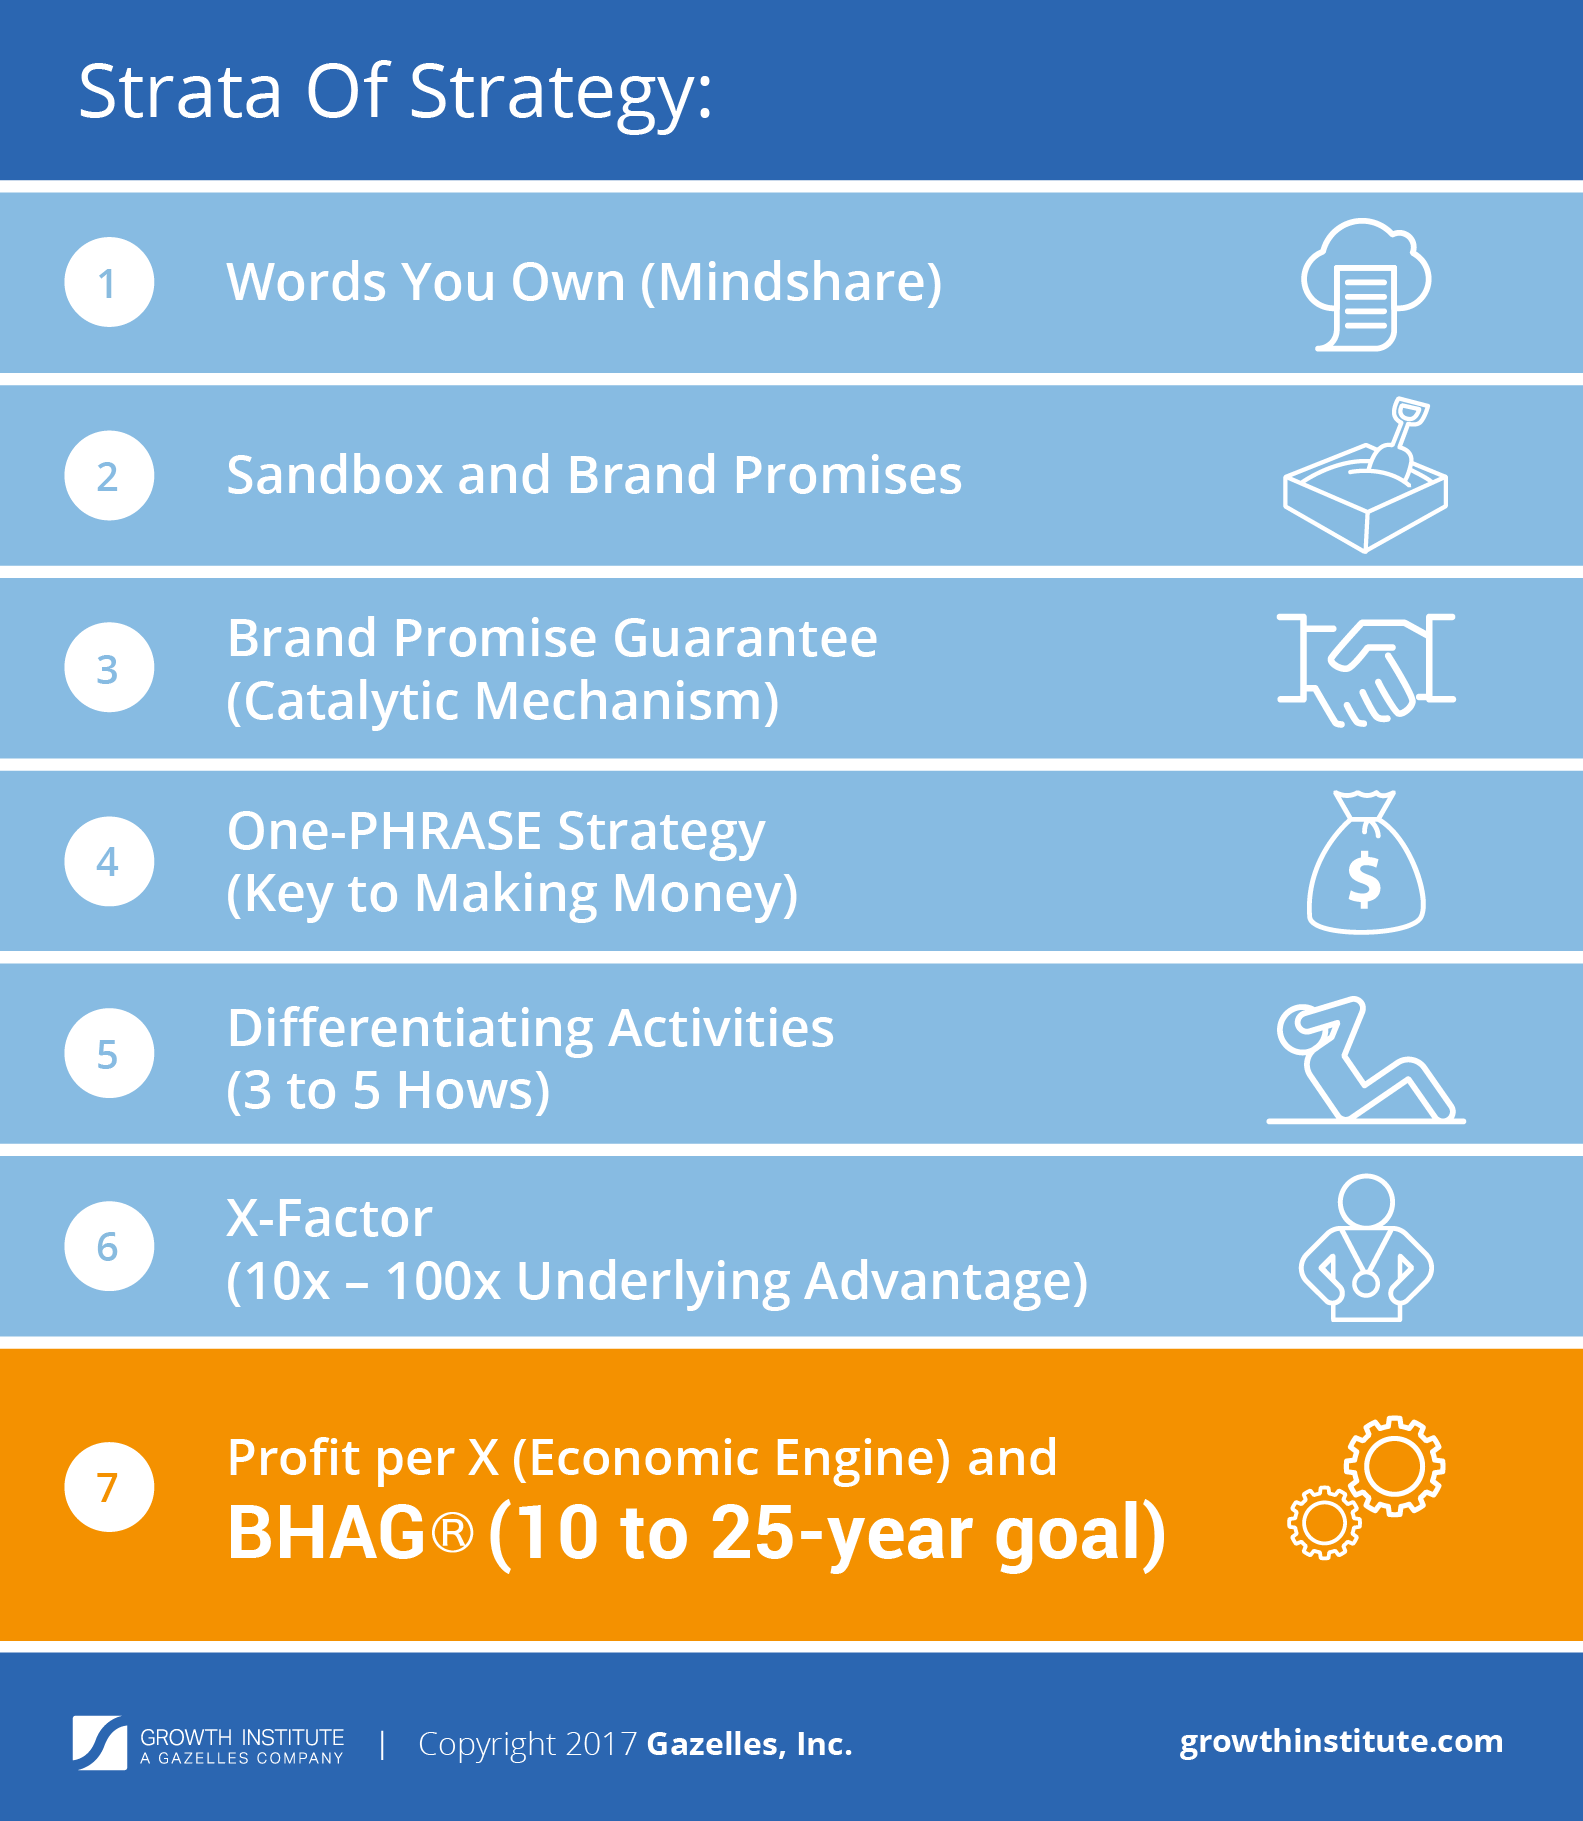 BHAG - Big Hairy Audacious Goal